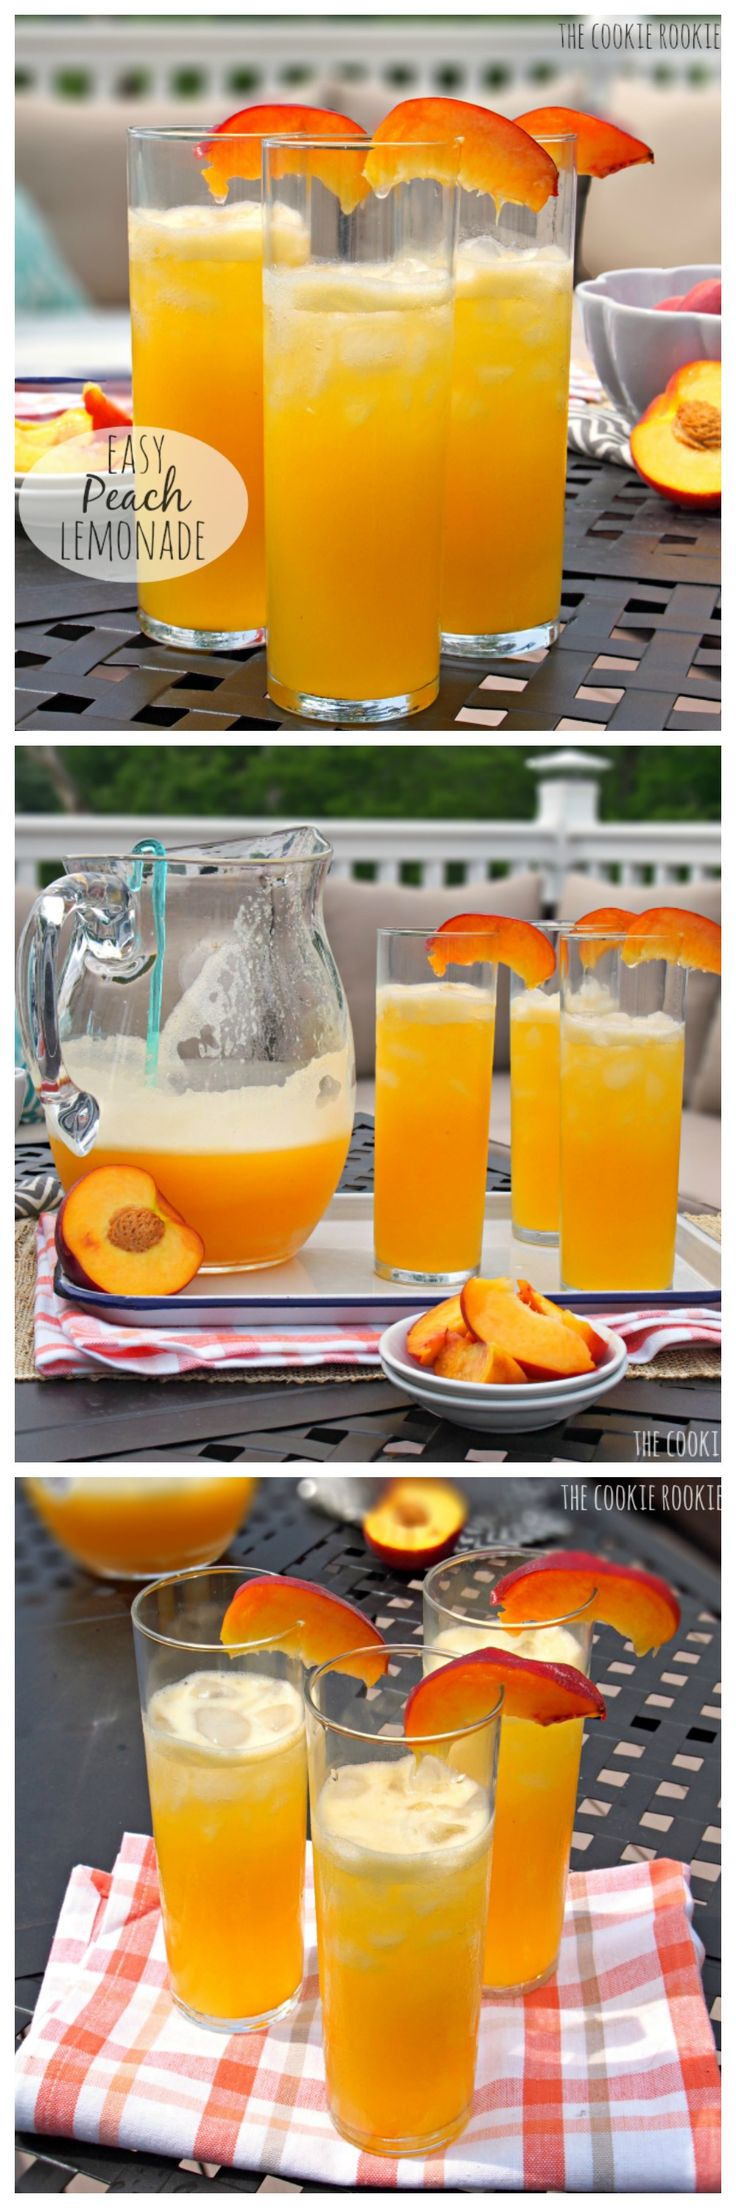 EASY PEACH LEMONADE! Only TWO ingredients.  Cocktail and Nonalcoholic versions. Favorite Summer Drink! – The Cookie